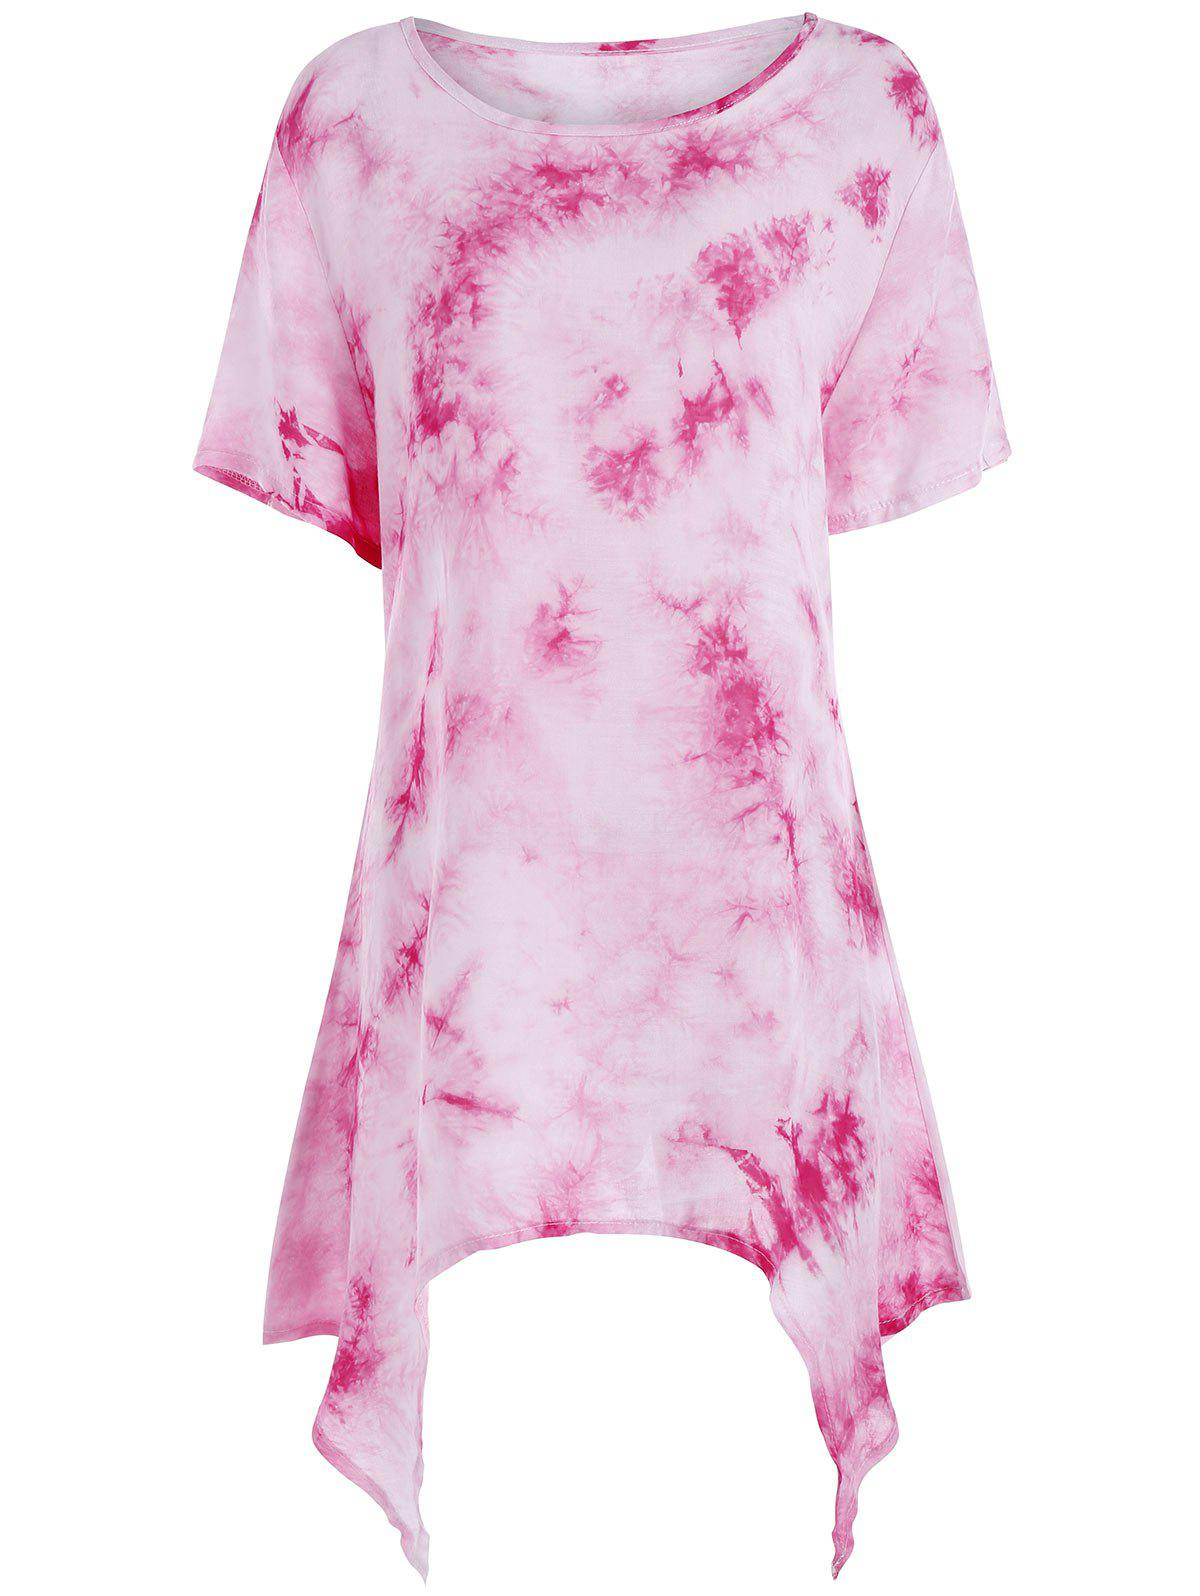 Tie Dye Asymmetrical Plus Size Tunic Top р джинсы perfect tie dye цвет розовый princess supertrash